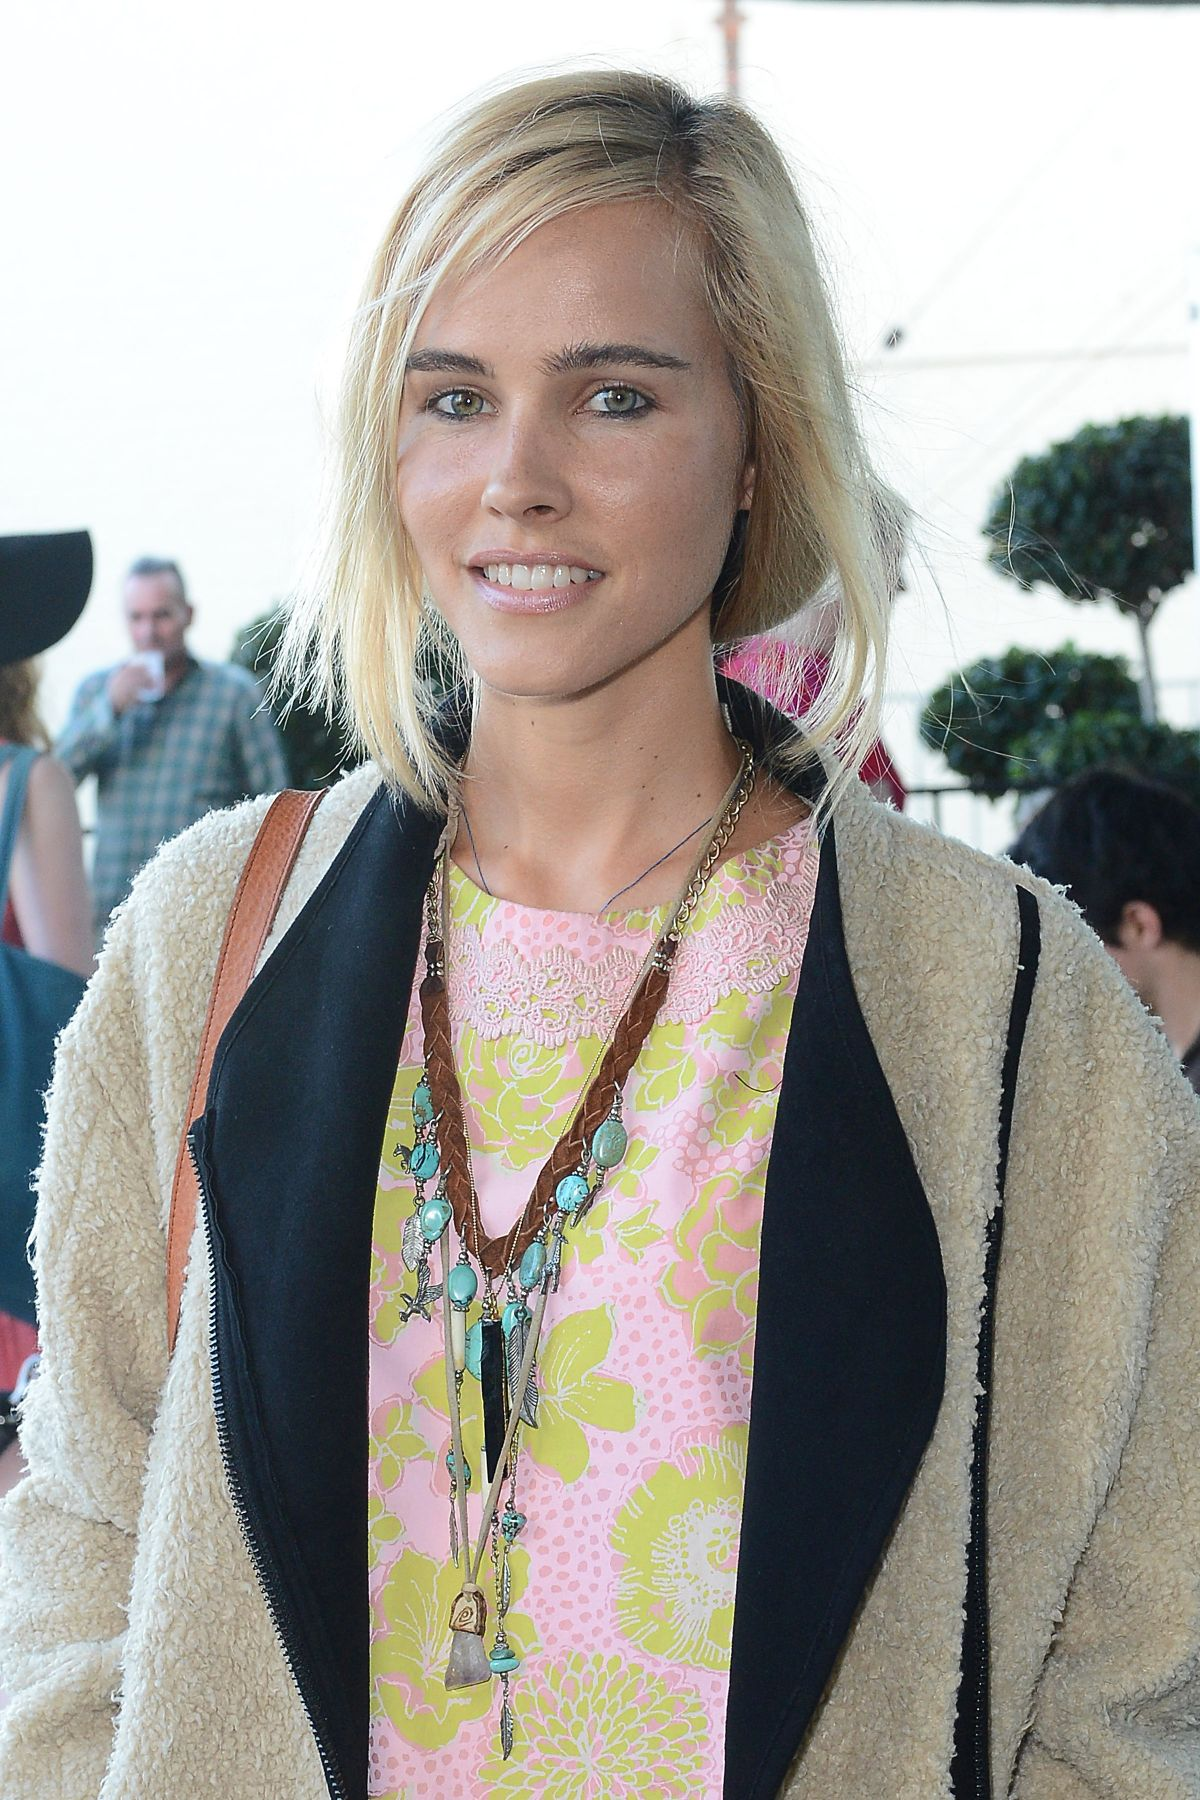 isabel lucas - photo #15